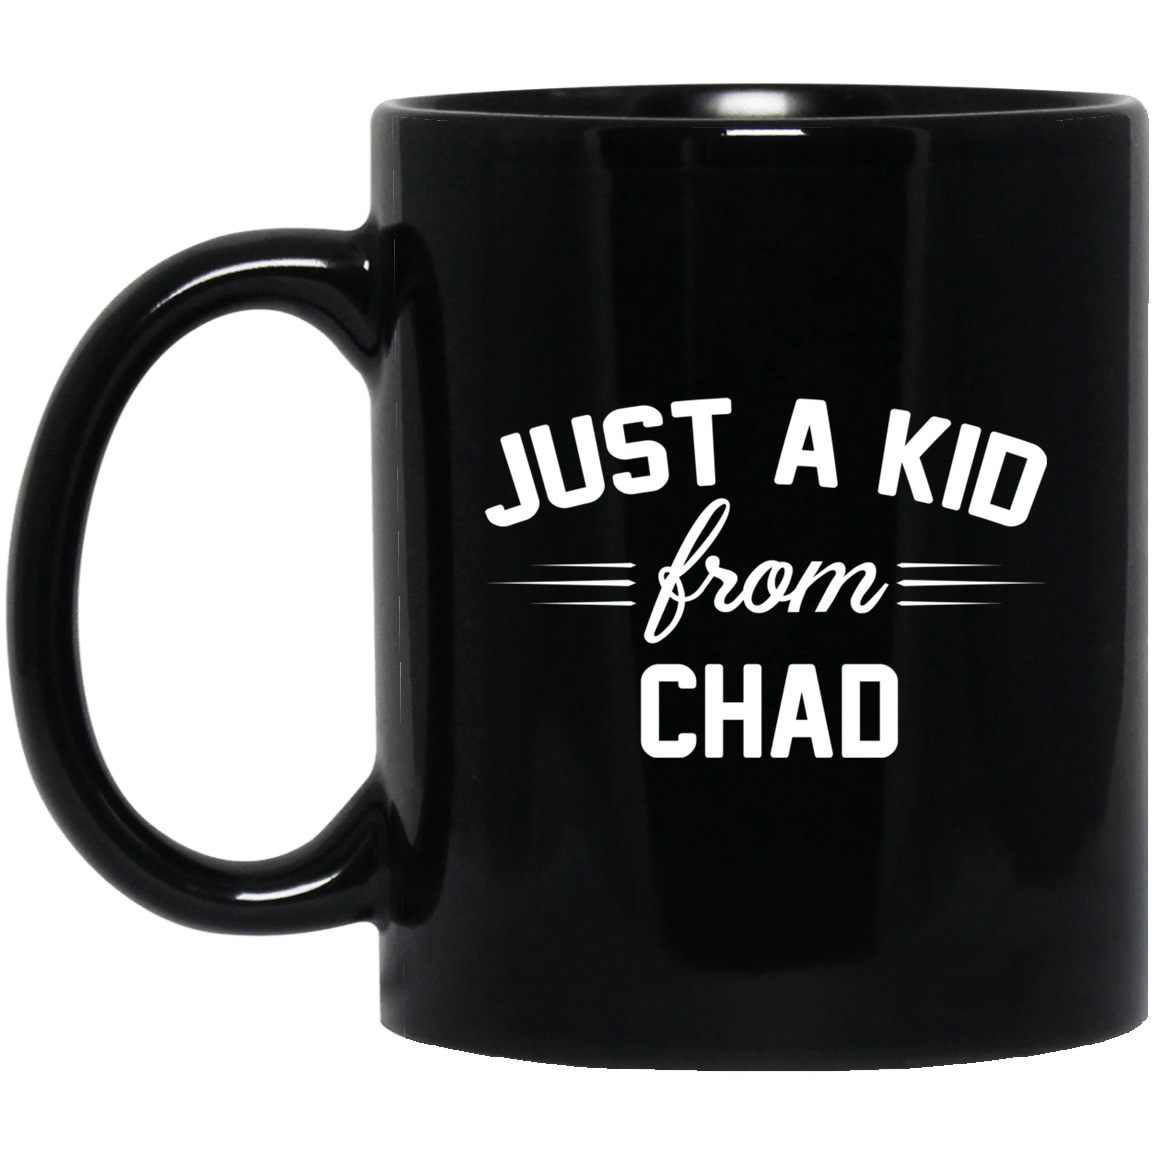 Just A Kid Store | Chad Mug 1065-10181-72111283-49307 - Tee Ript